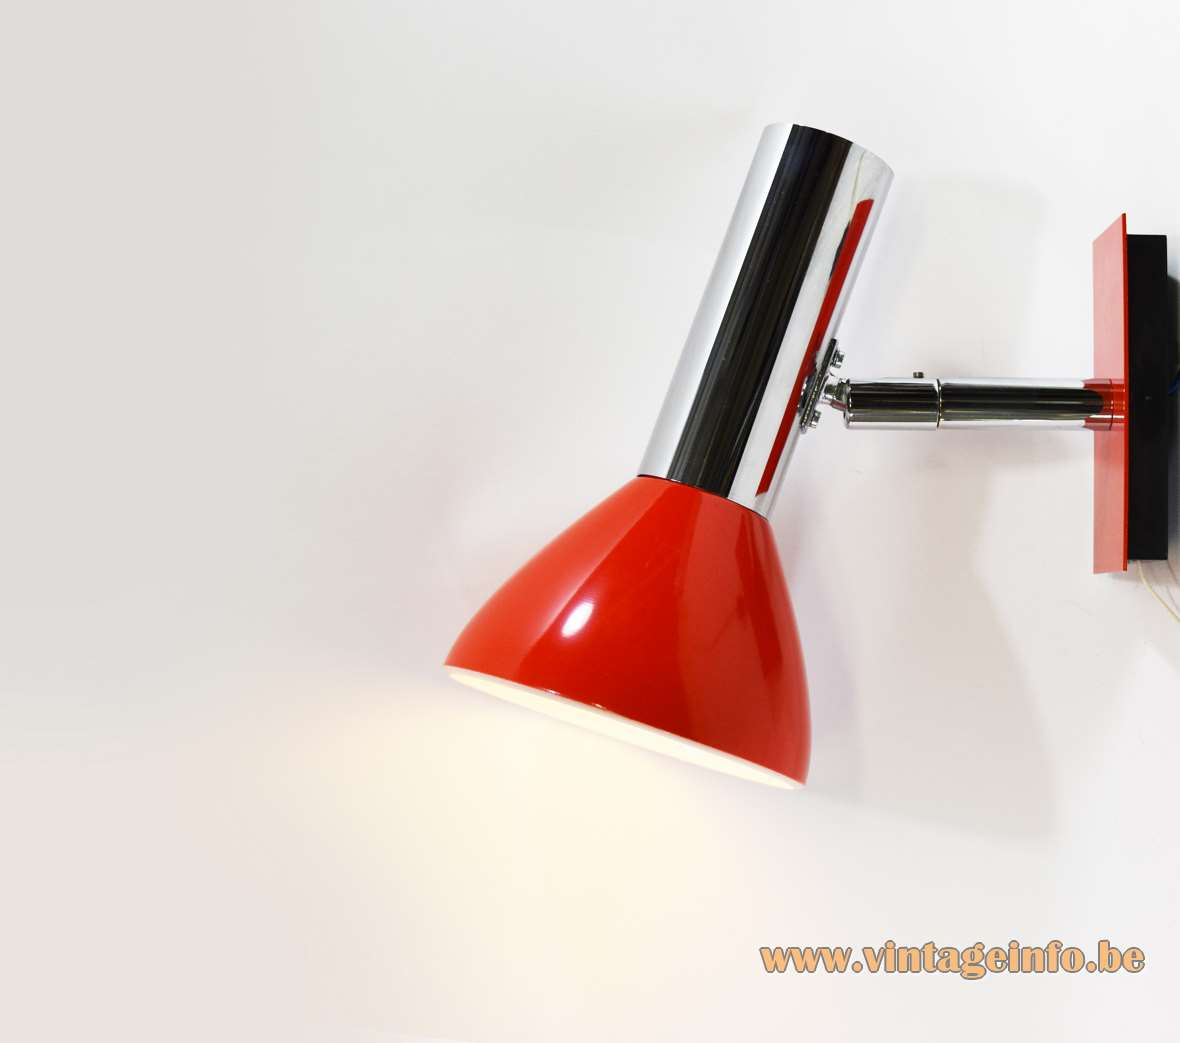 Hustadt-Leuchten wall lamp chrome joint red aluminium lampshade rectangular wall mount 1970s Germany MCM